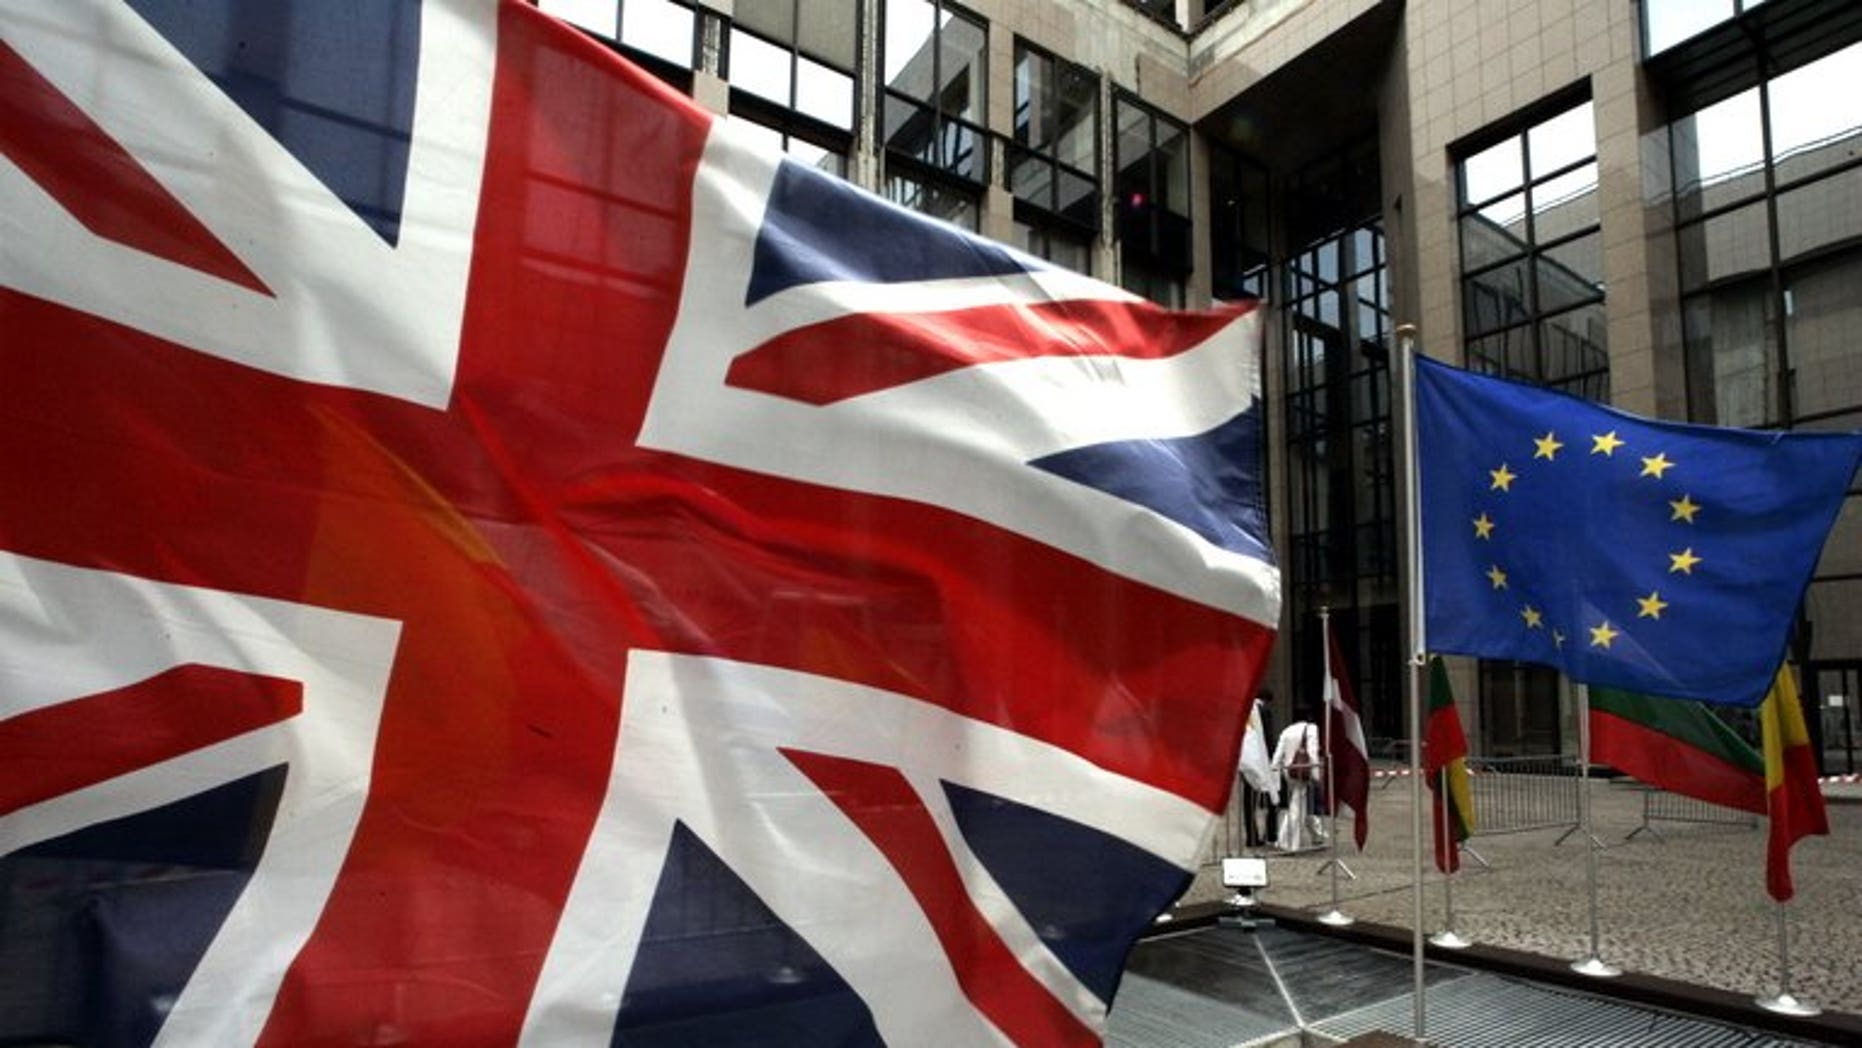 A European Flag and the Union Jack are seen in front of the EU headquarters building in Brussels in 2005. A British think-tank has launched a competition for the best plan to leave the EU -- offering a prize of 100,000 euros ($131,000) instead of in pounds.